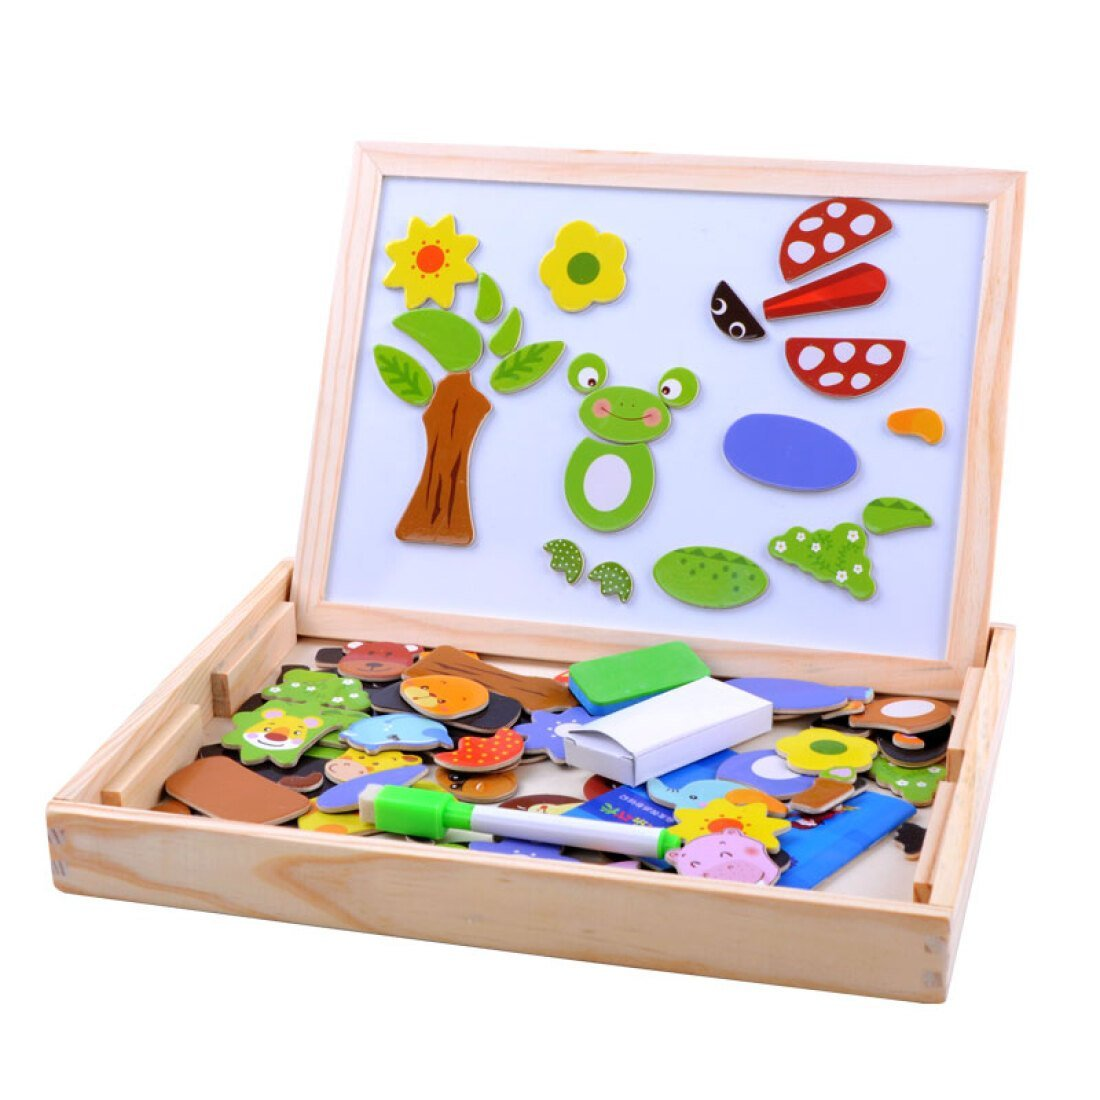 Alytimes Wooden Magnetic Jigsaw Puzzles Games Toddler Toys Double Sided Drawing Easel for Kids by